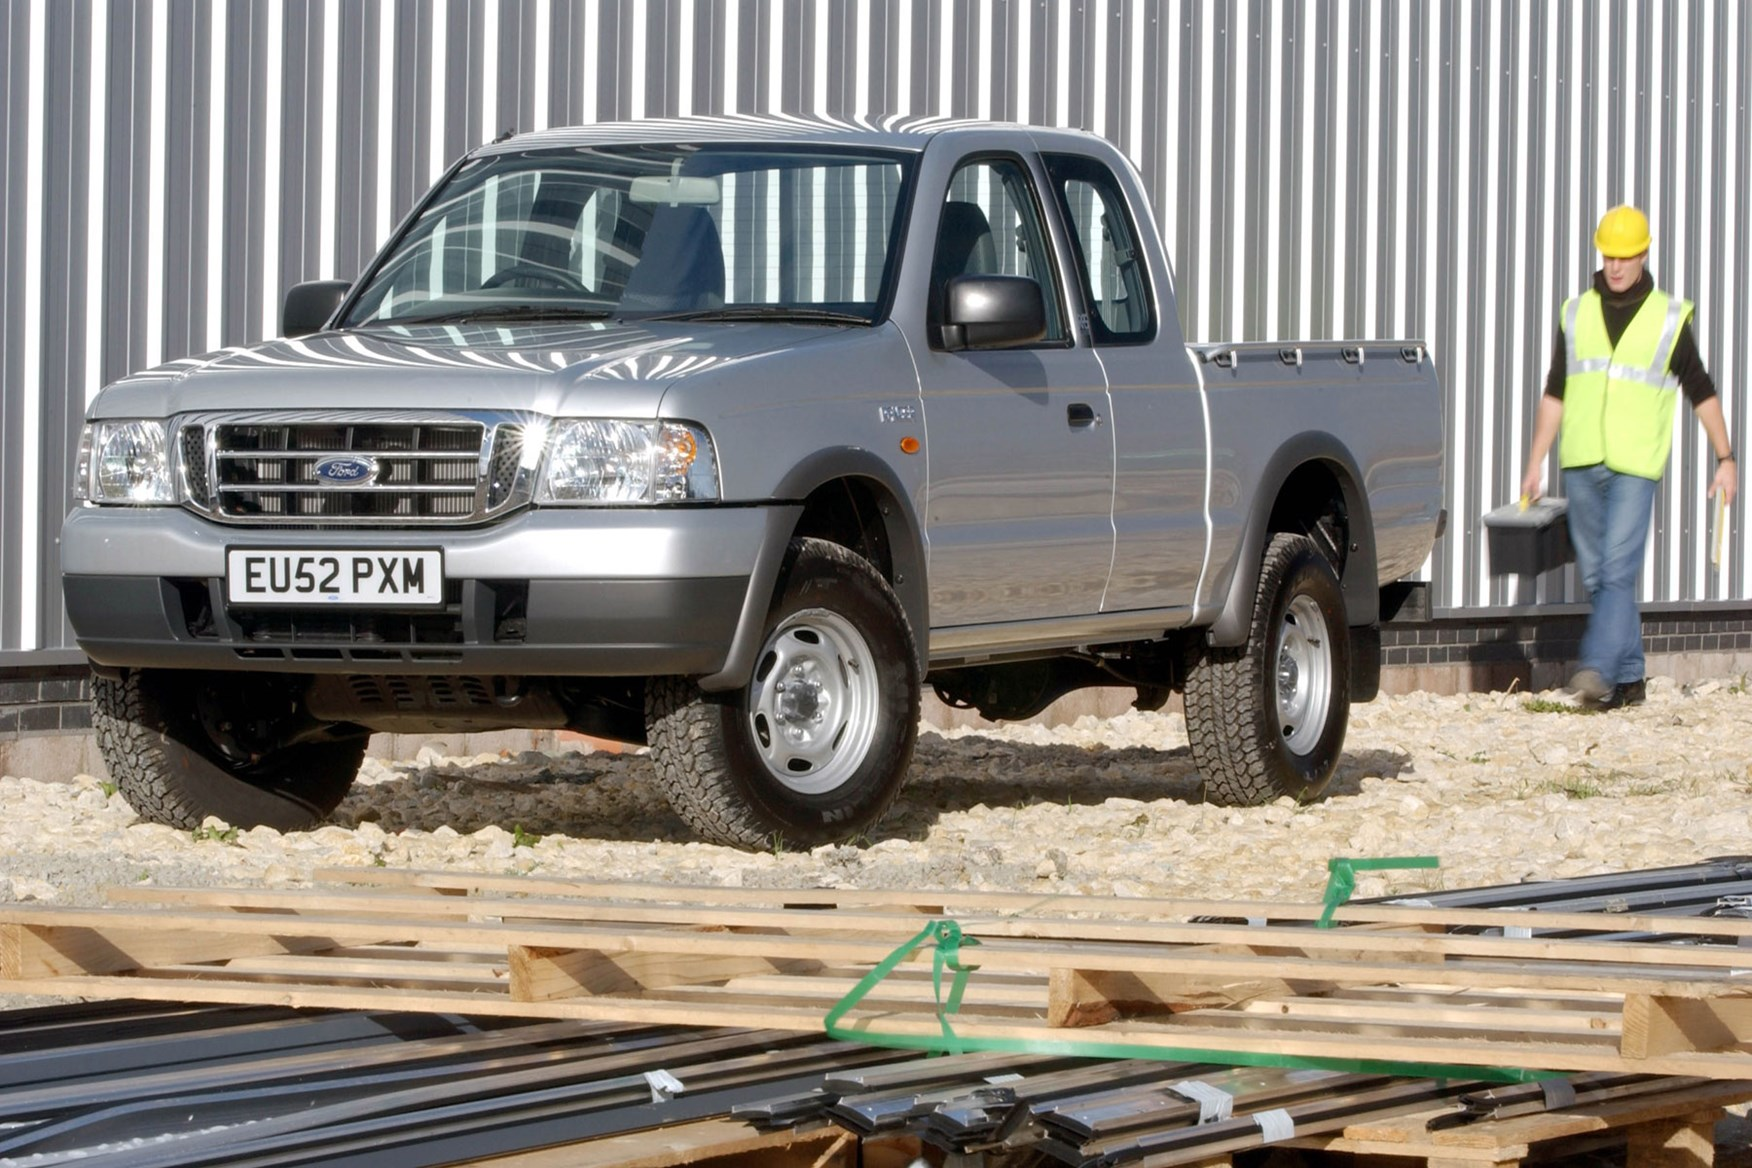 Ford Ranger (1999-2006) front view